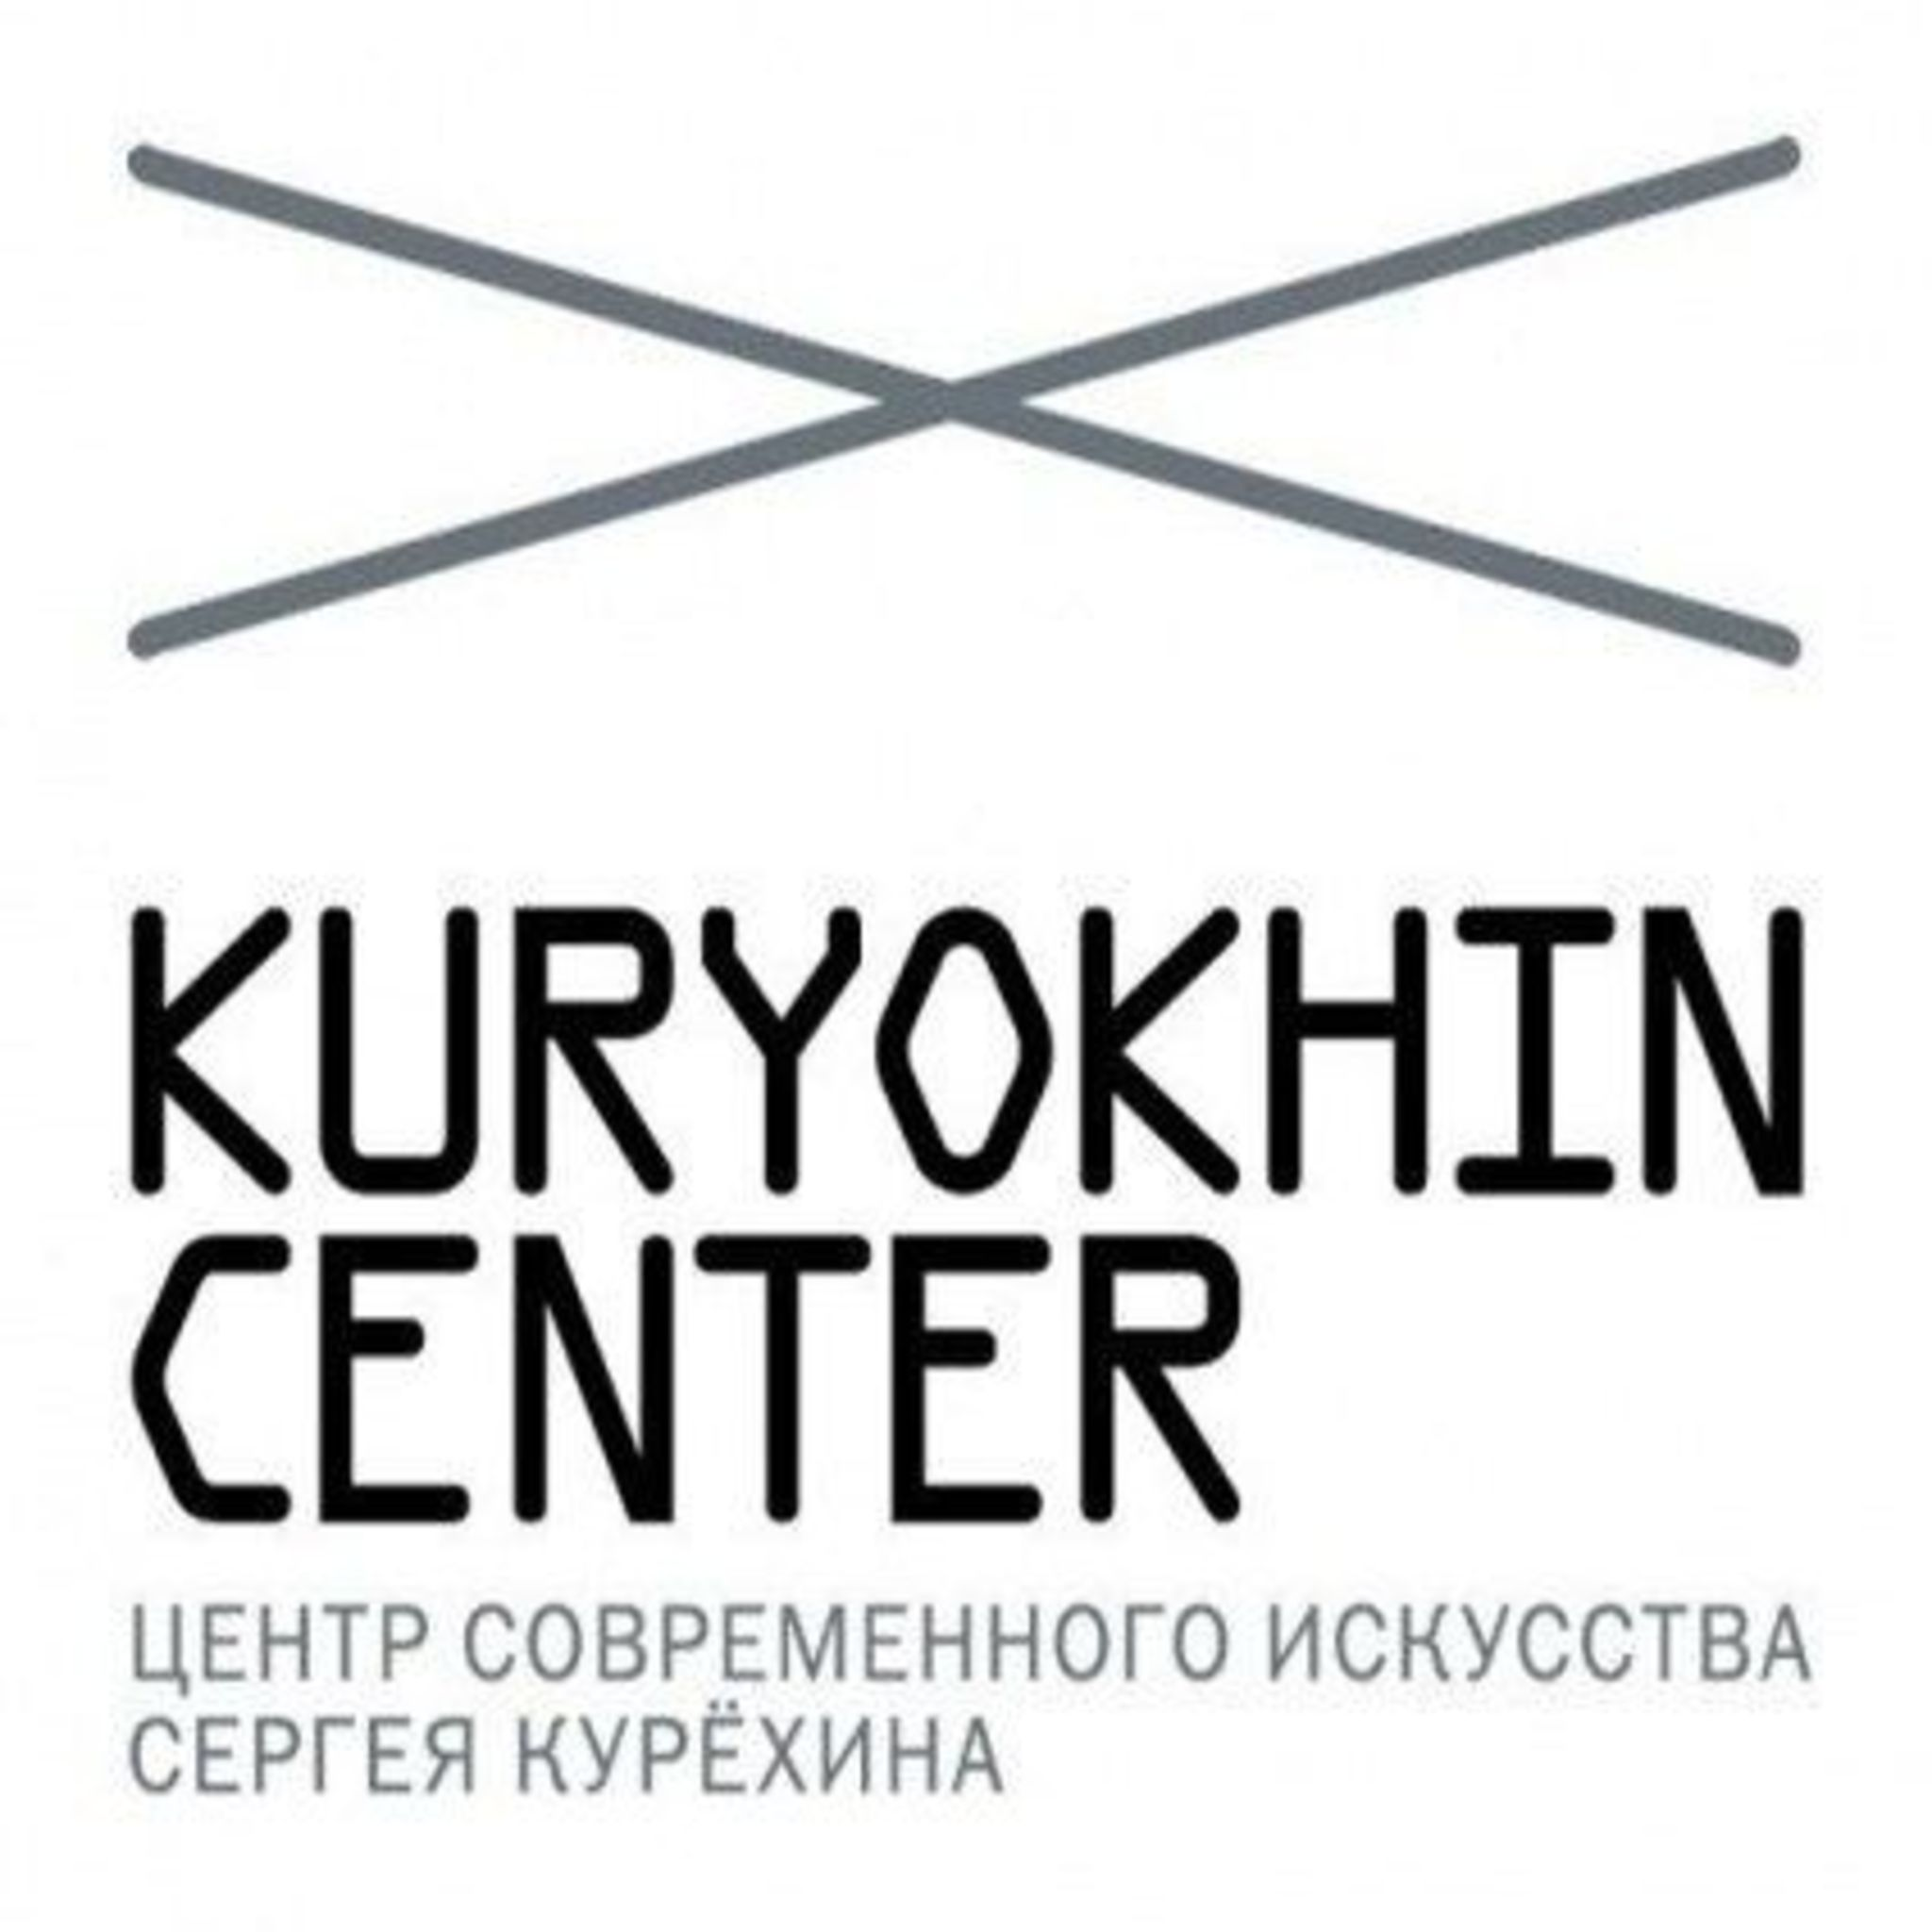 Center of contemporary art by named of Sergey Kuryokhin